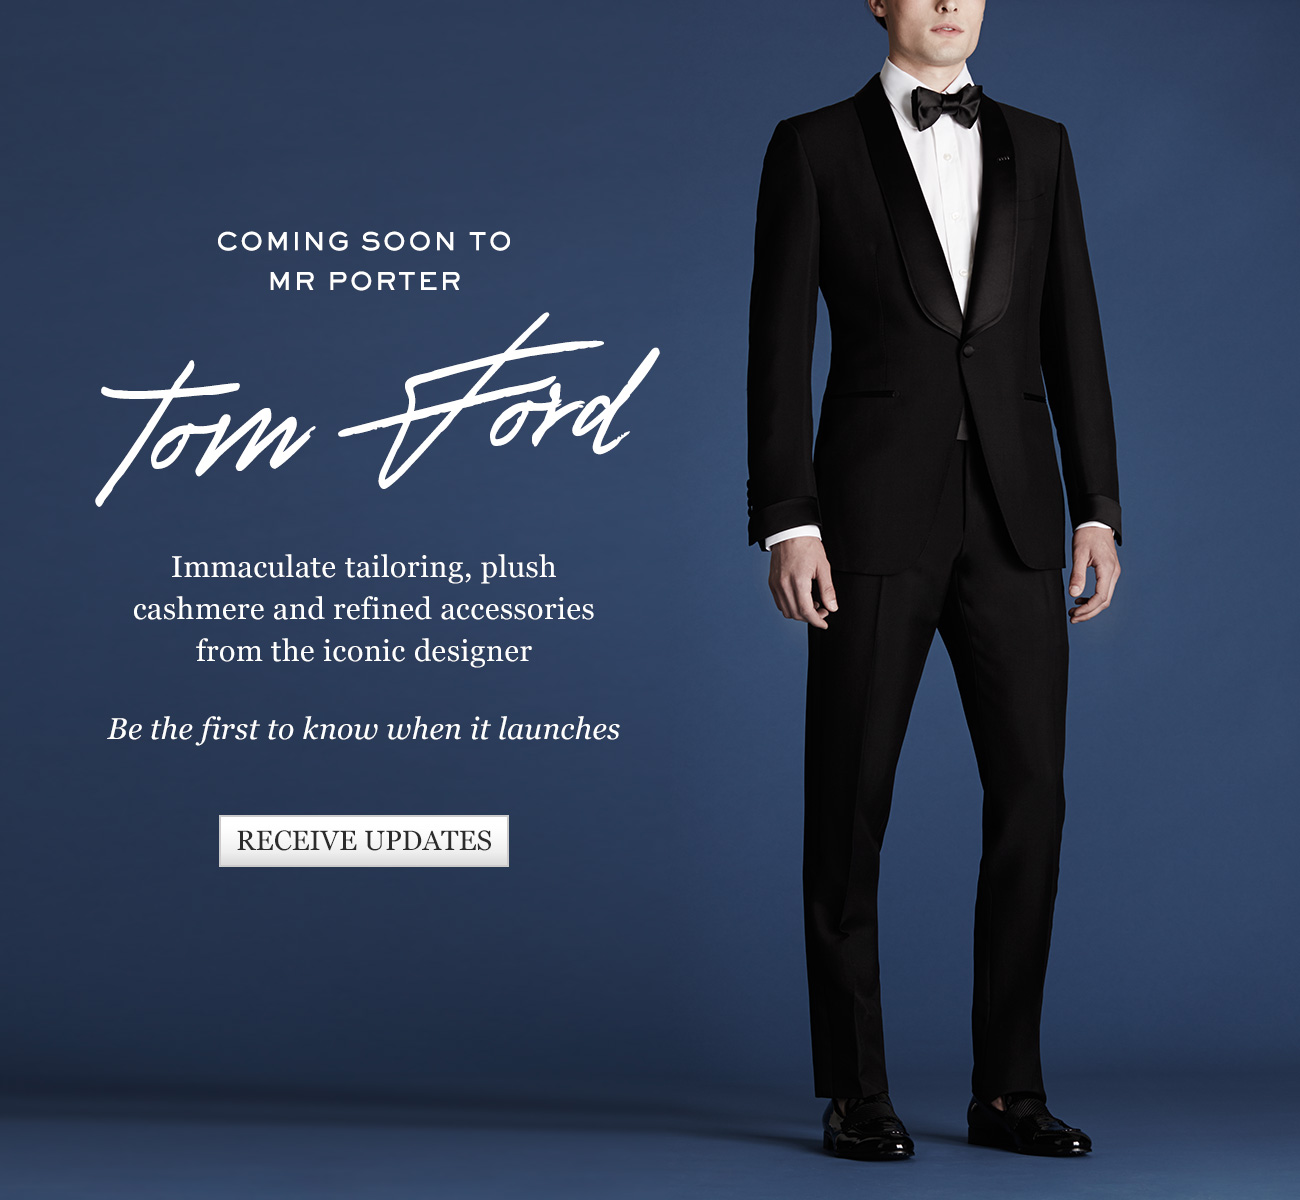 Le Meilleur Mr Porter Coming Soon Tom Ford Milled Ce Mois Ci